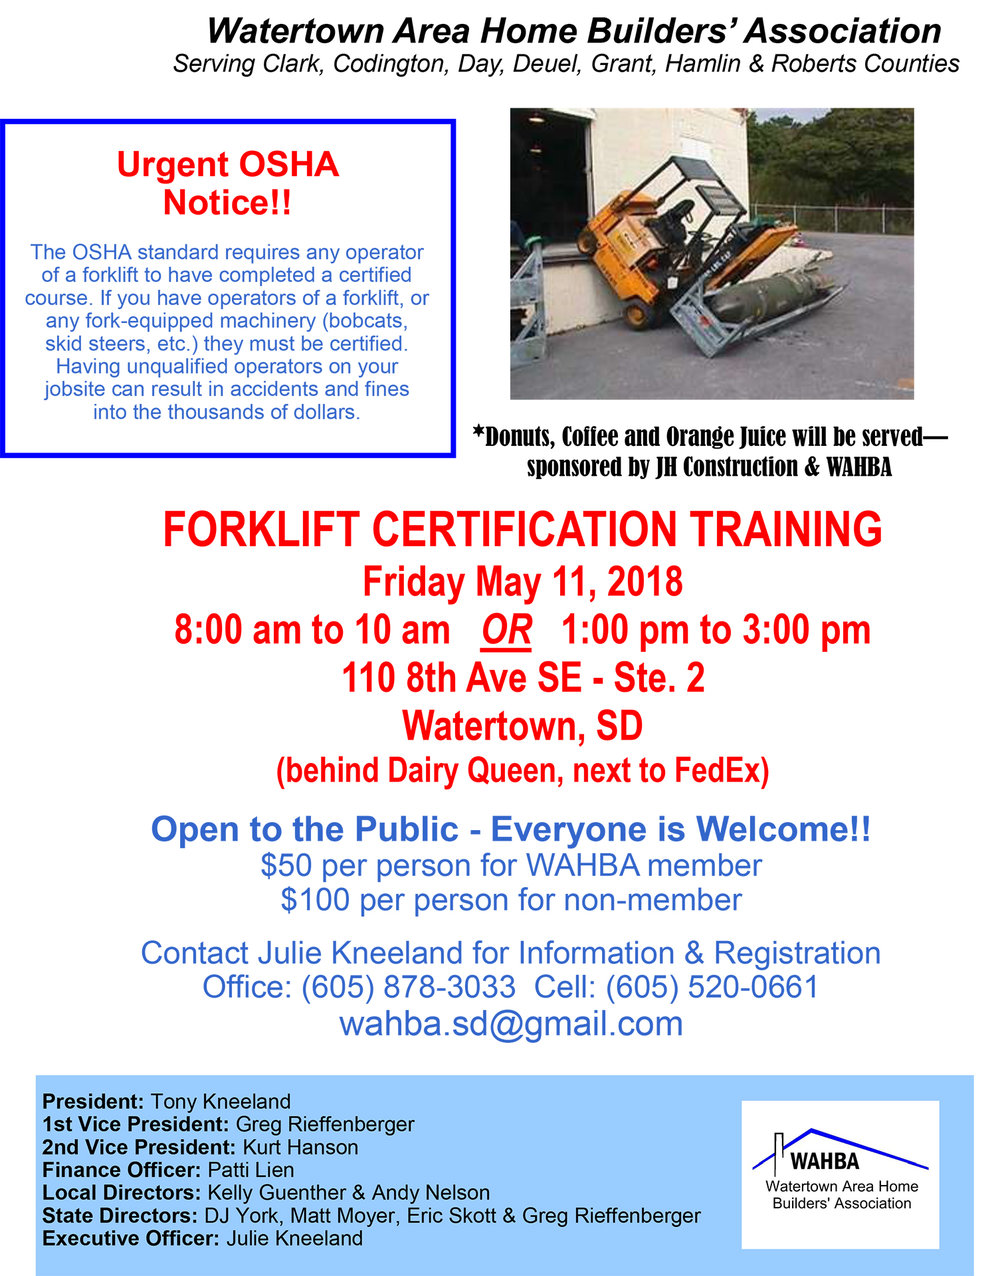 Forklift Certification Training Watertown Area Home Builders